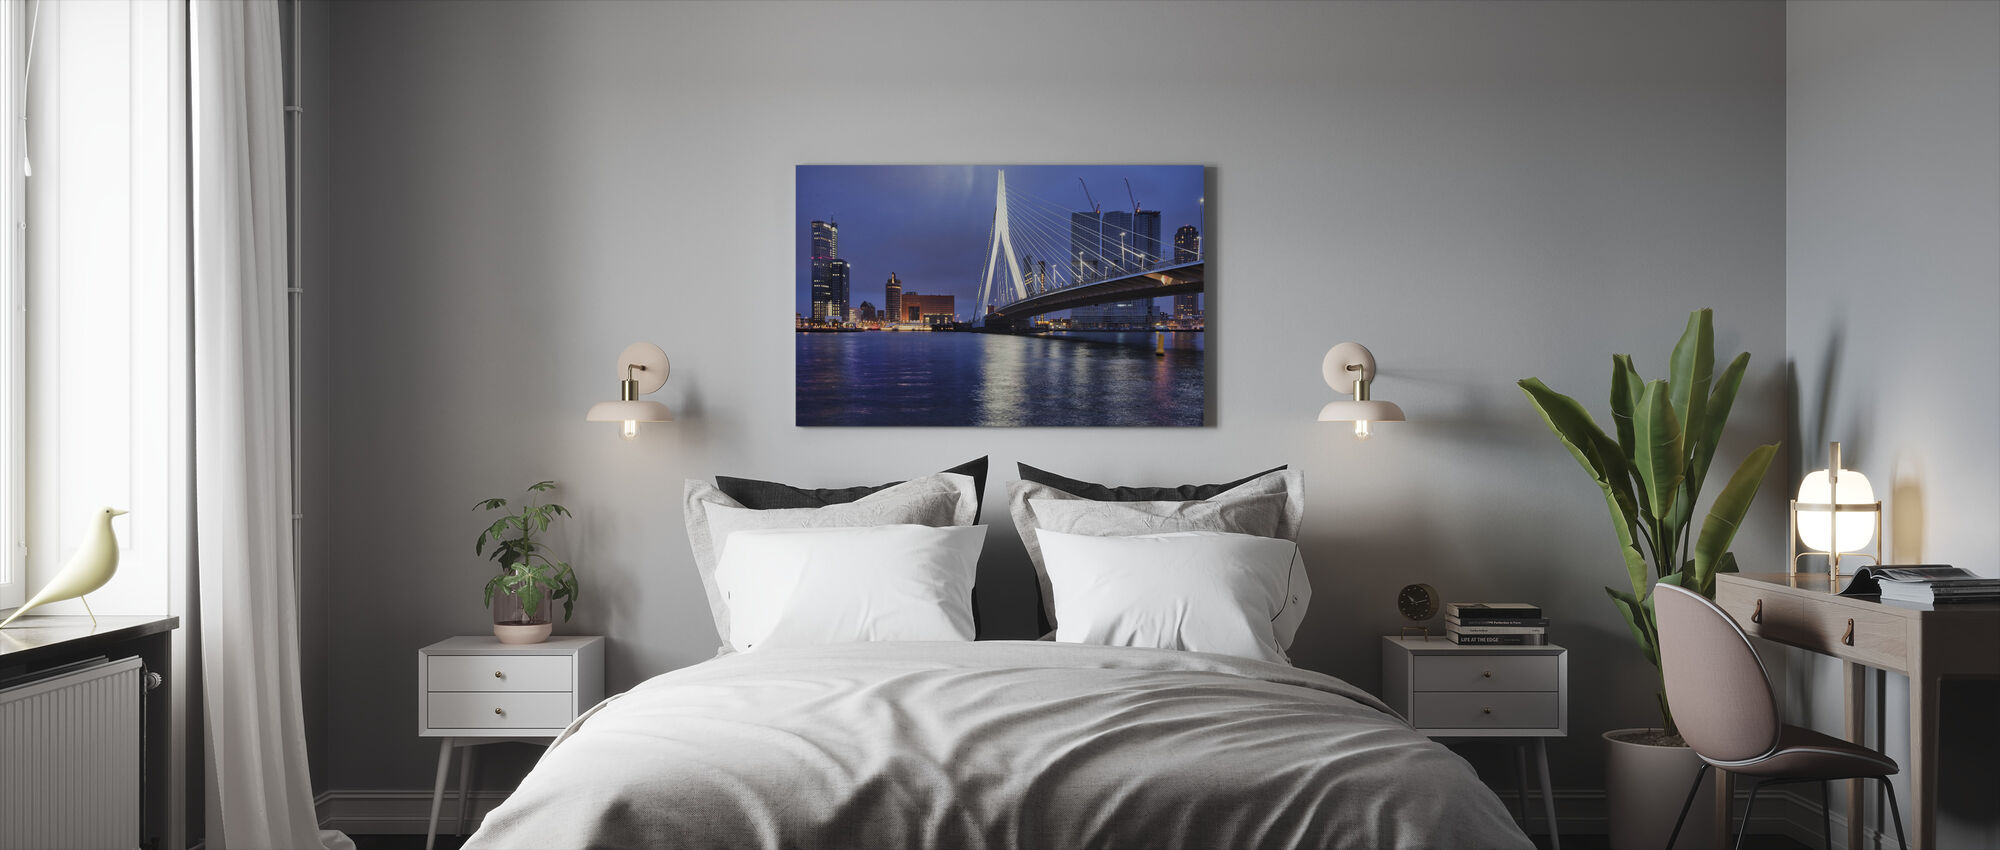 City of Rotterdam at Night - Canvas print - Bedroom